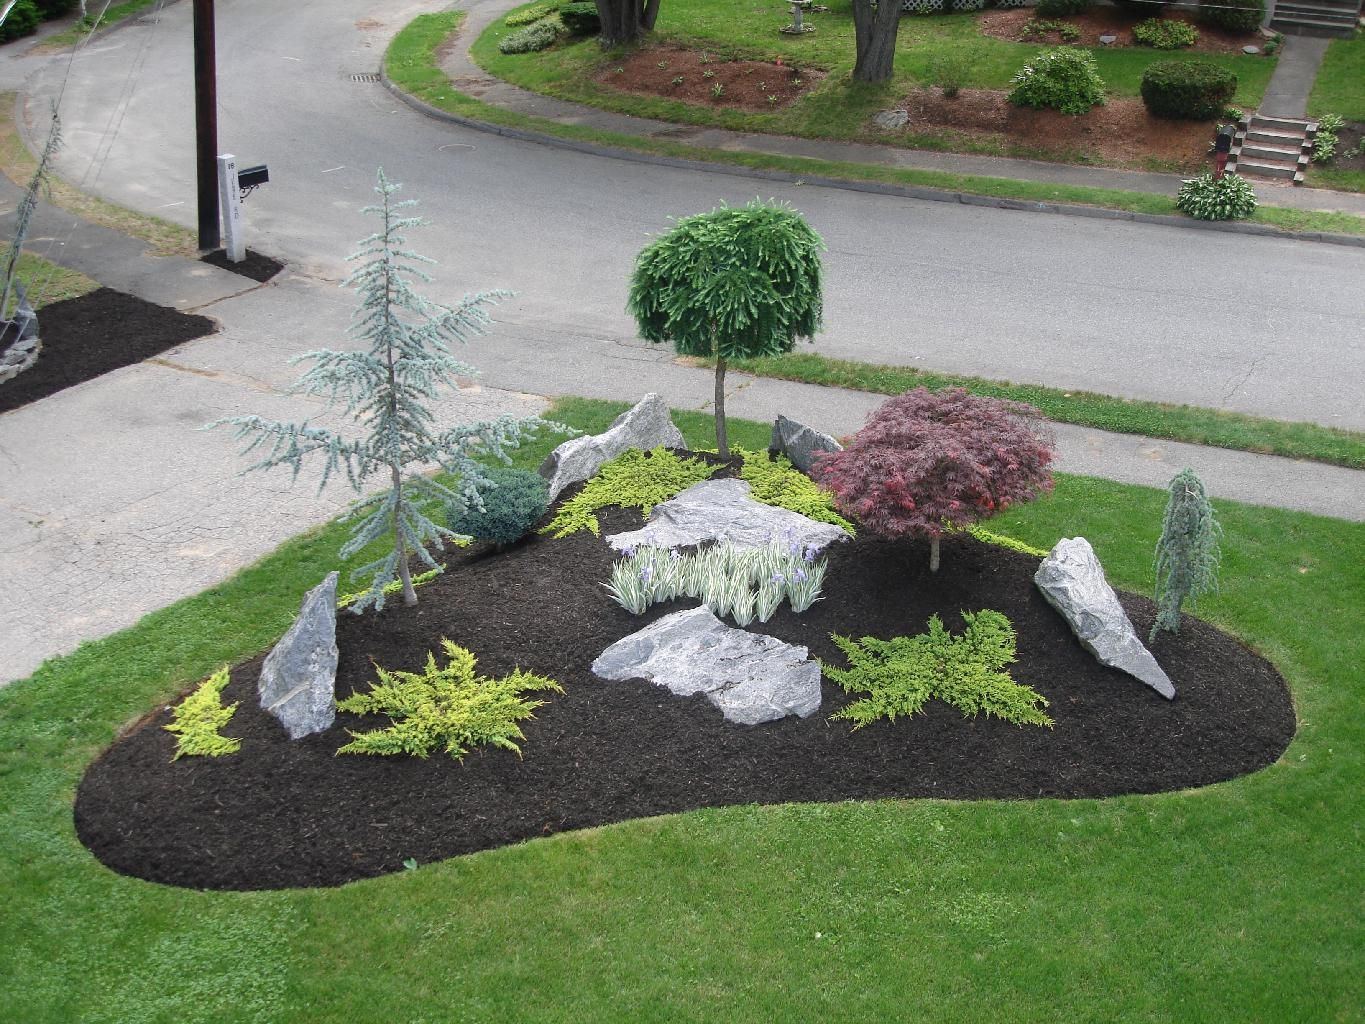 Simple Landscape Designs With Rock Beds This Is Similar To What